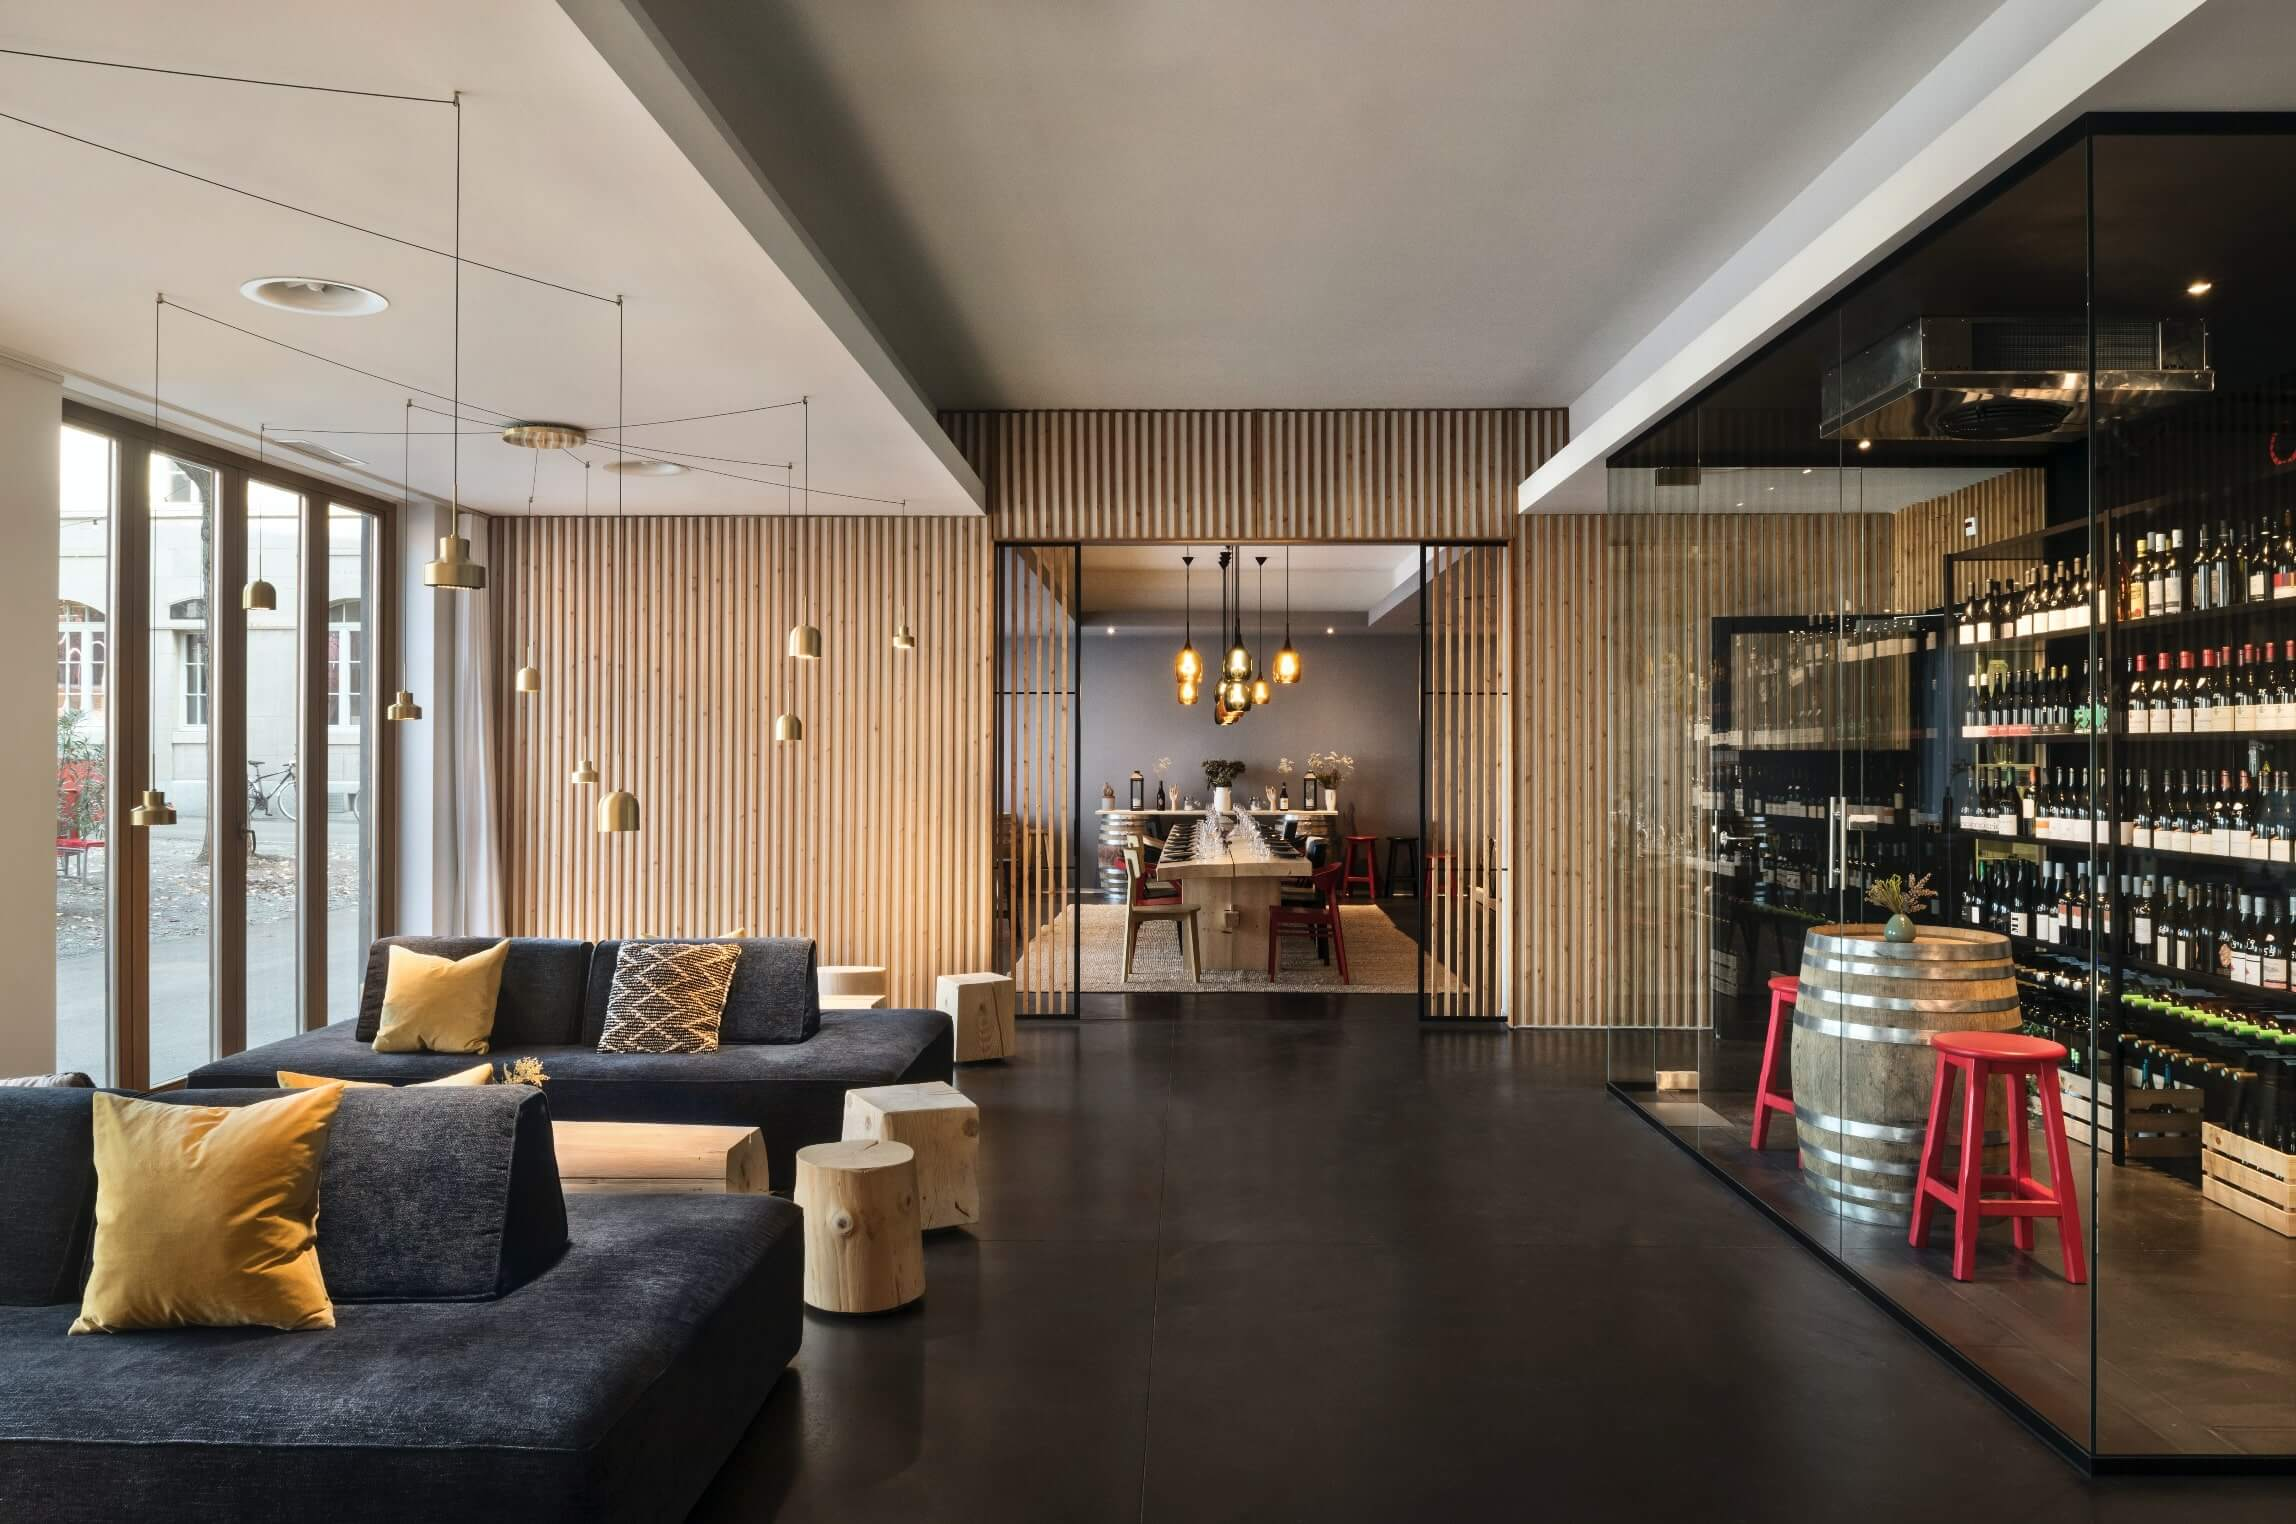 the design of the lobby in the hotel integrates the carnozet and a wood wall